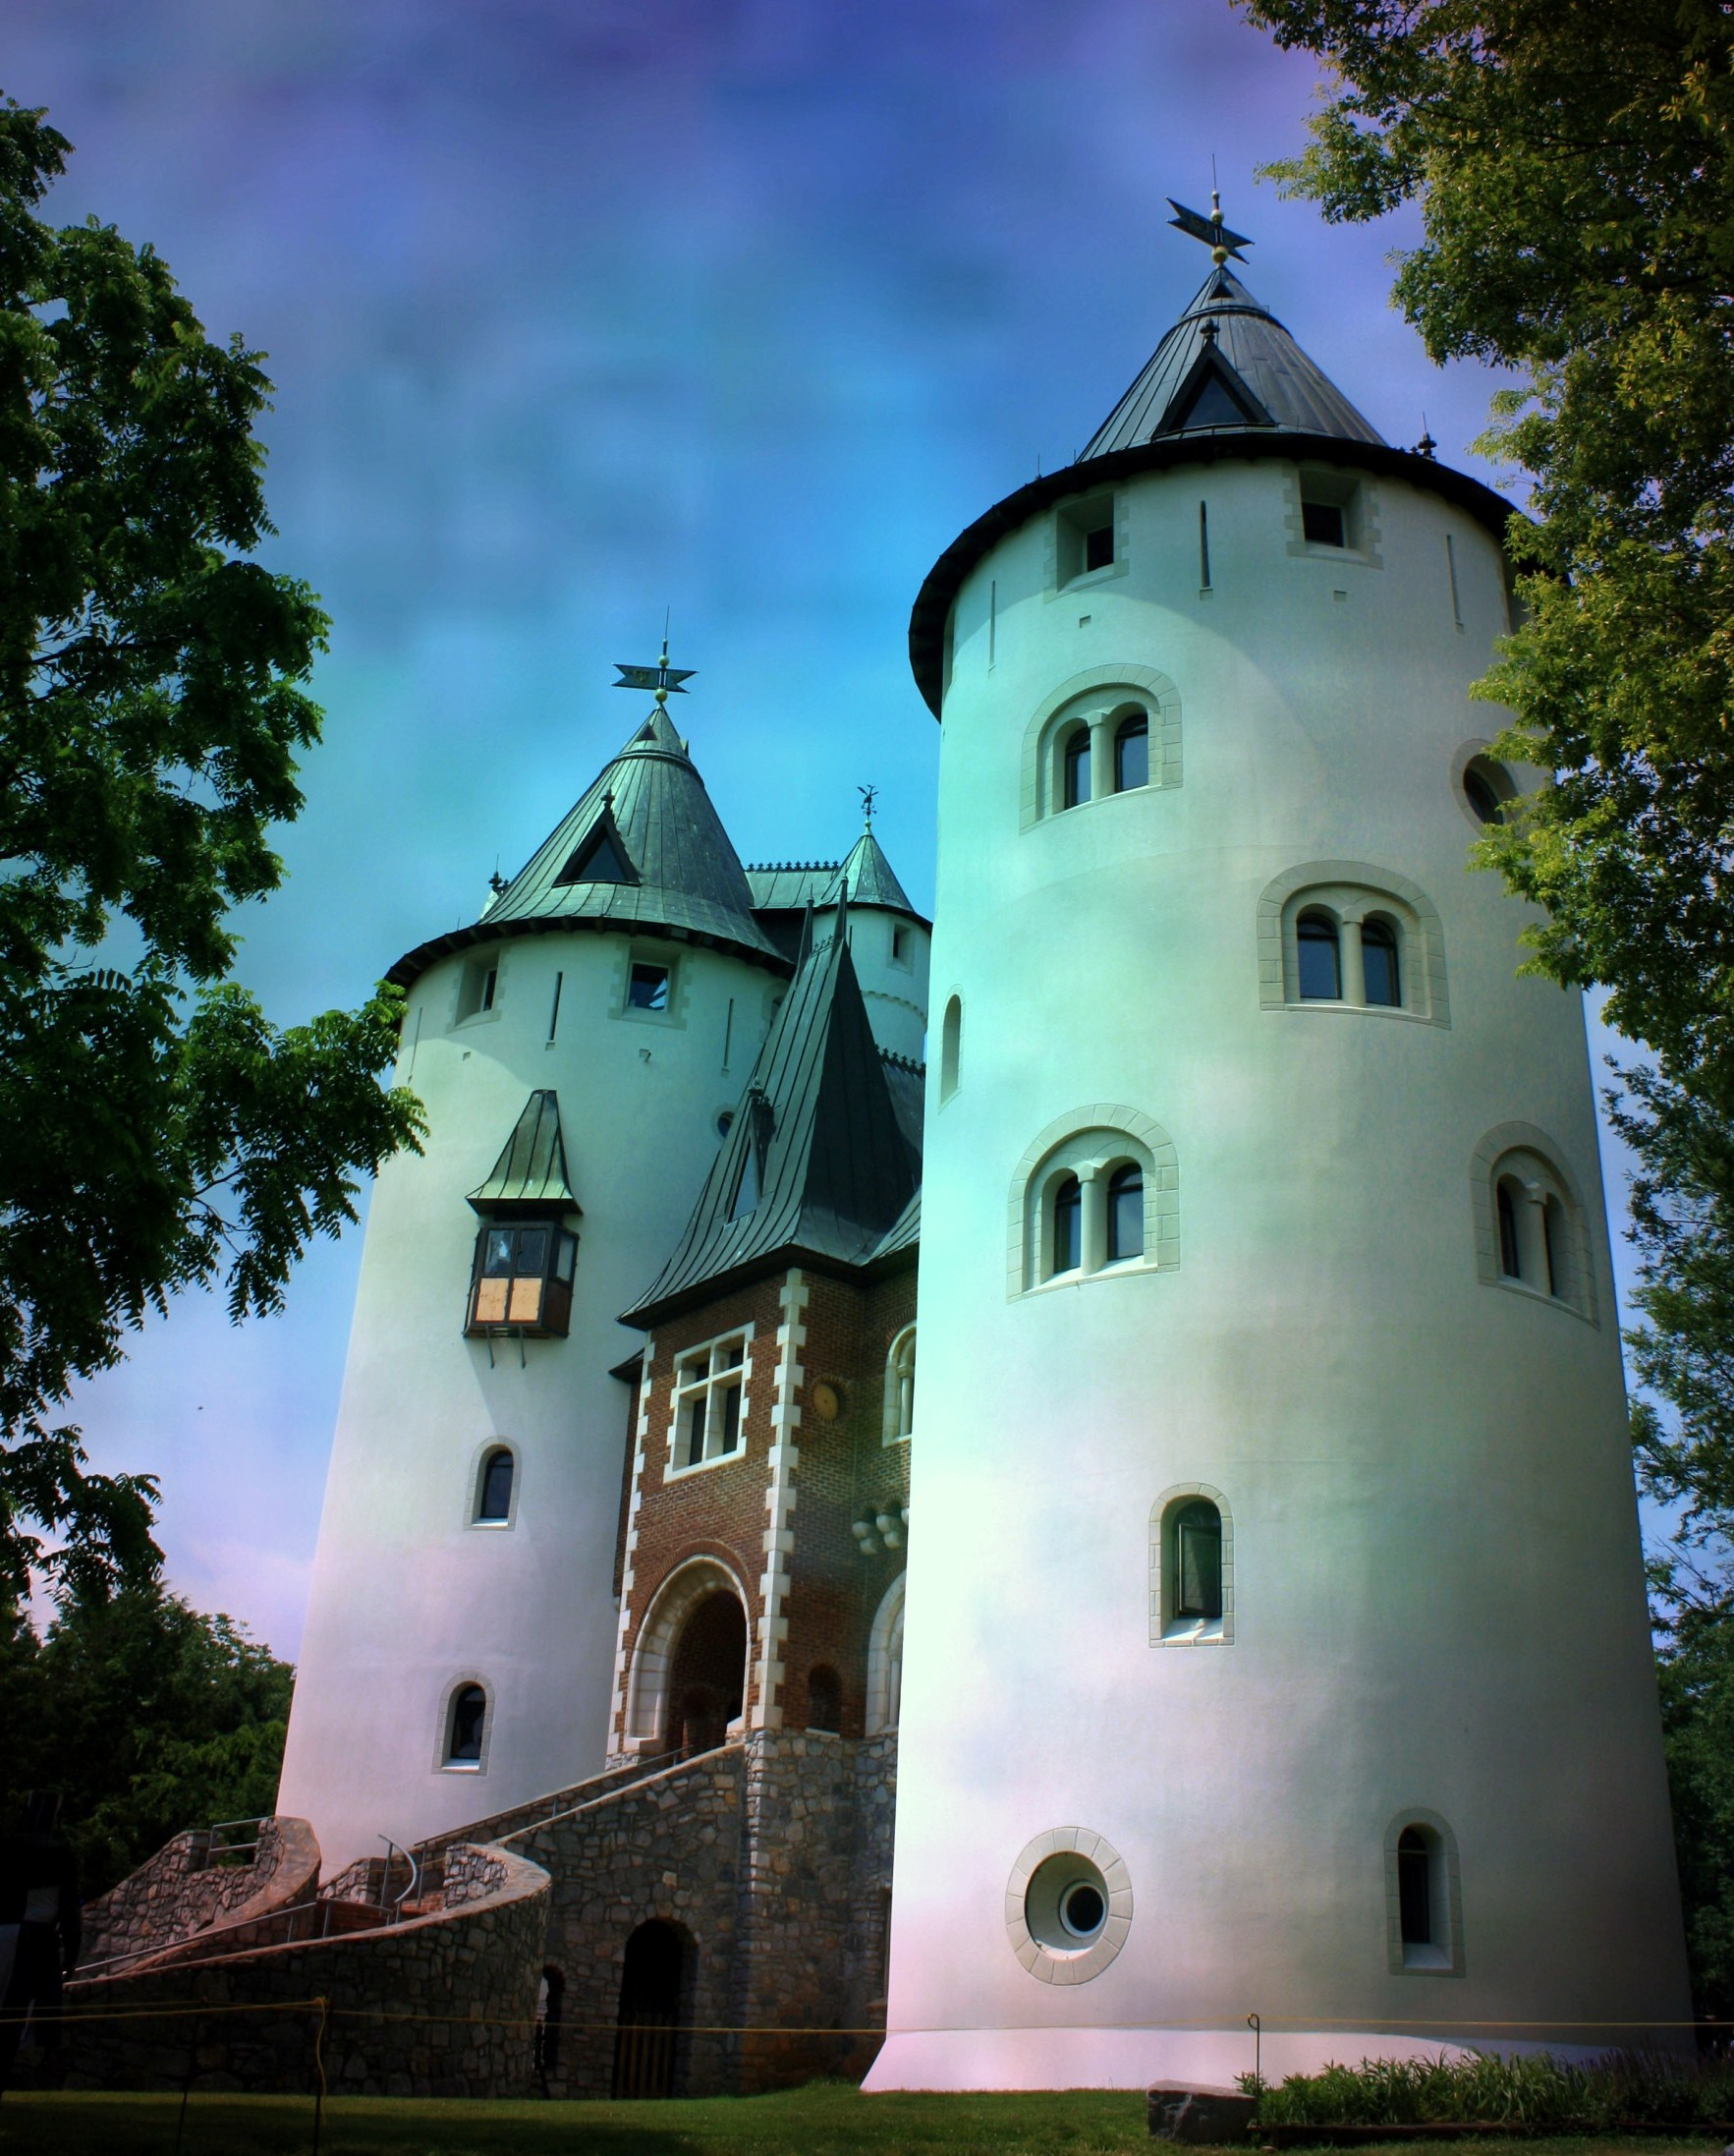 List Of Castles In The United States